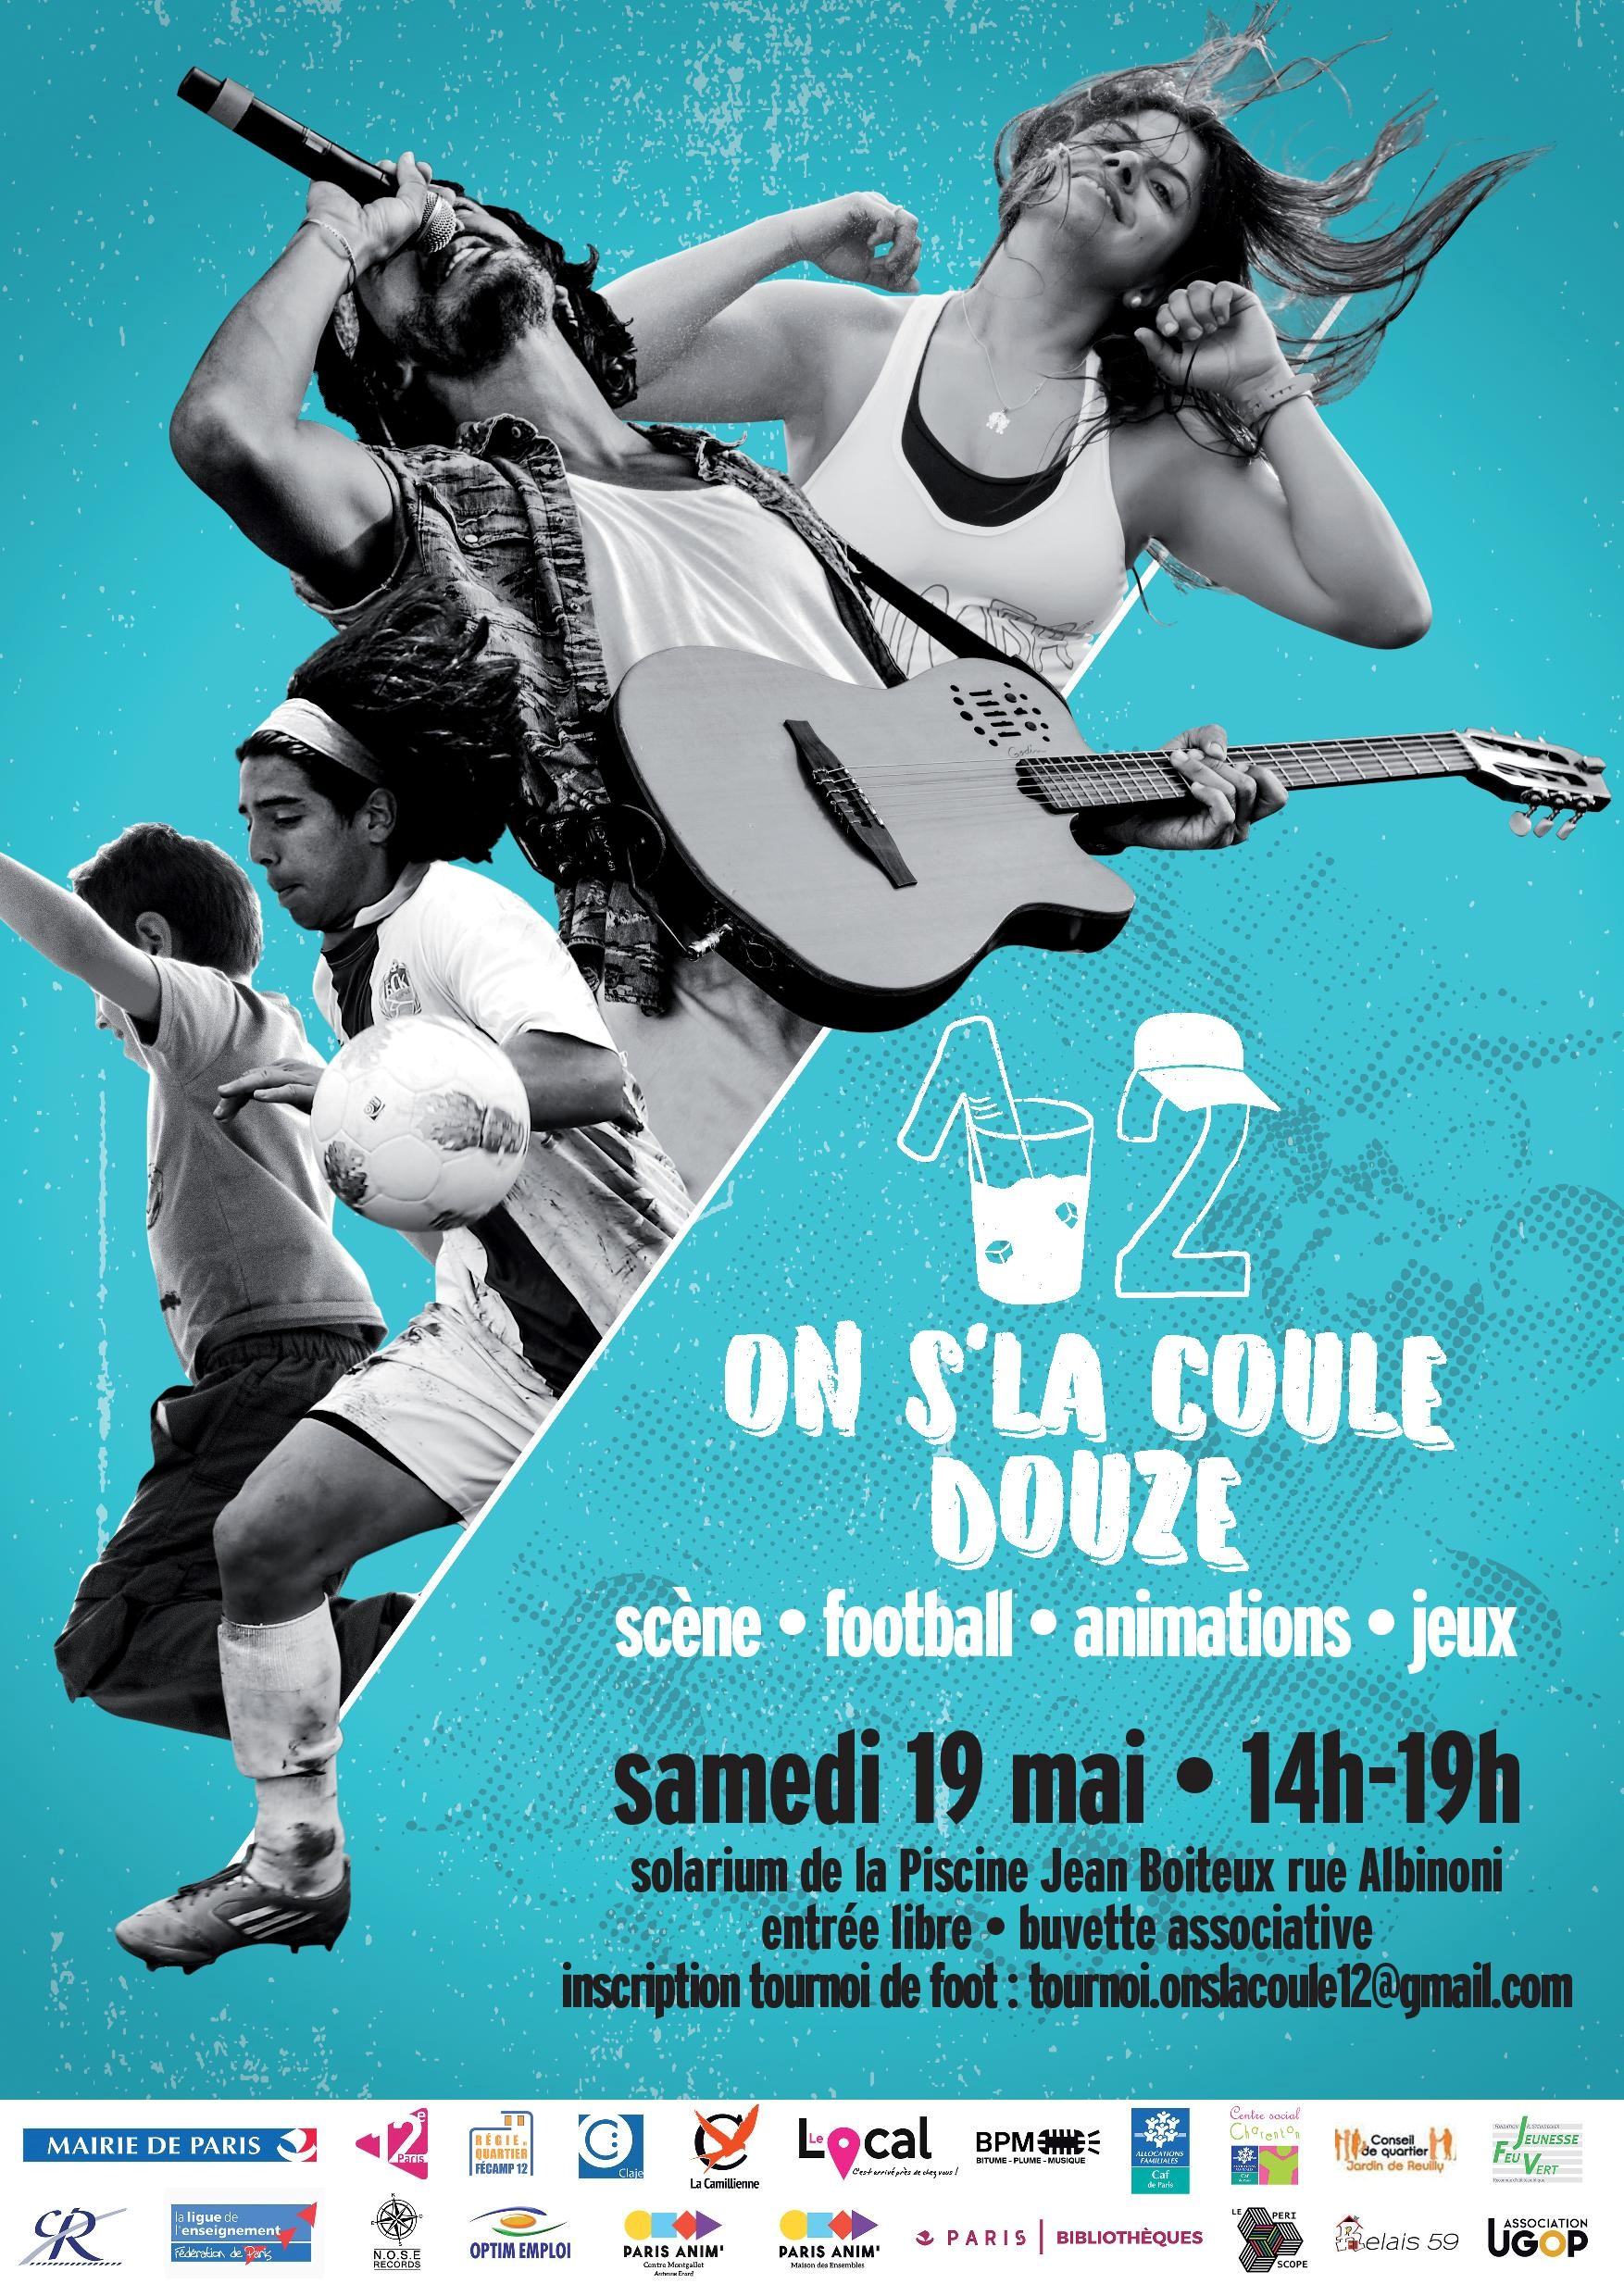 On sl a coule douze !